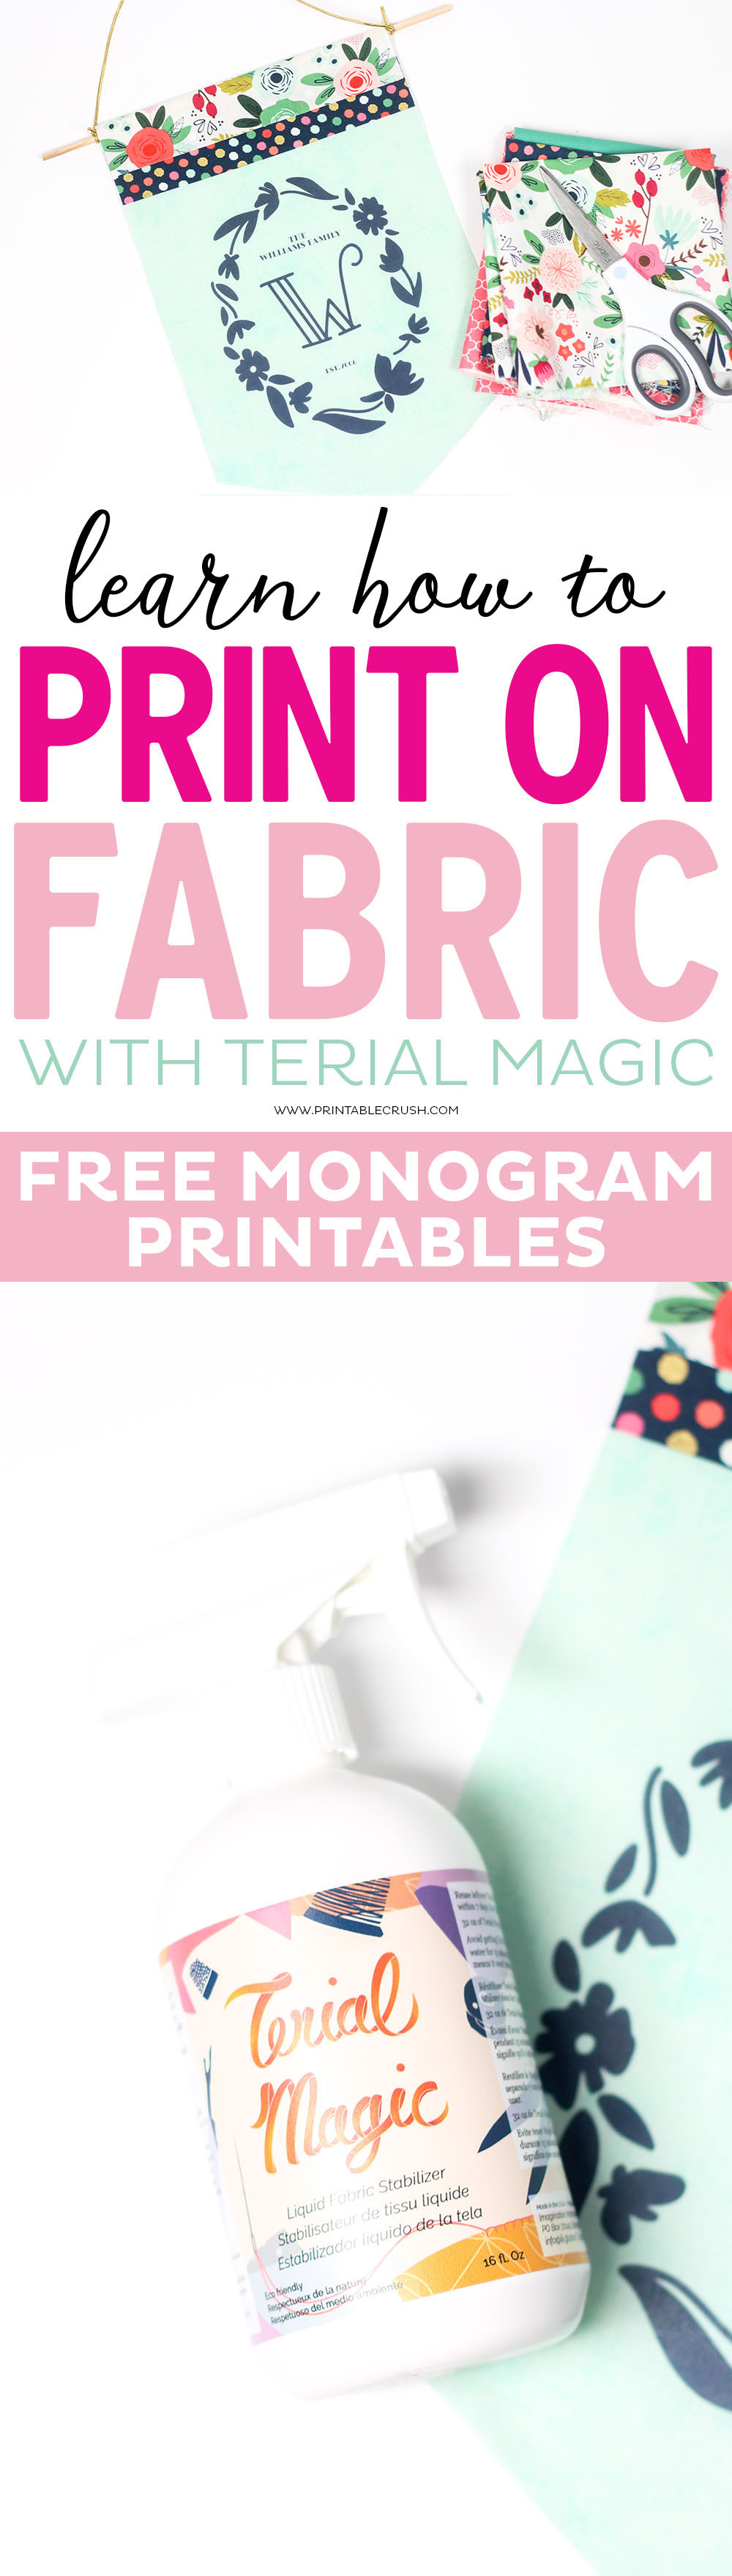 Learn how to Print on Fabric with Terial Magic Fabric Stabilizer.